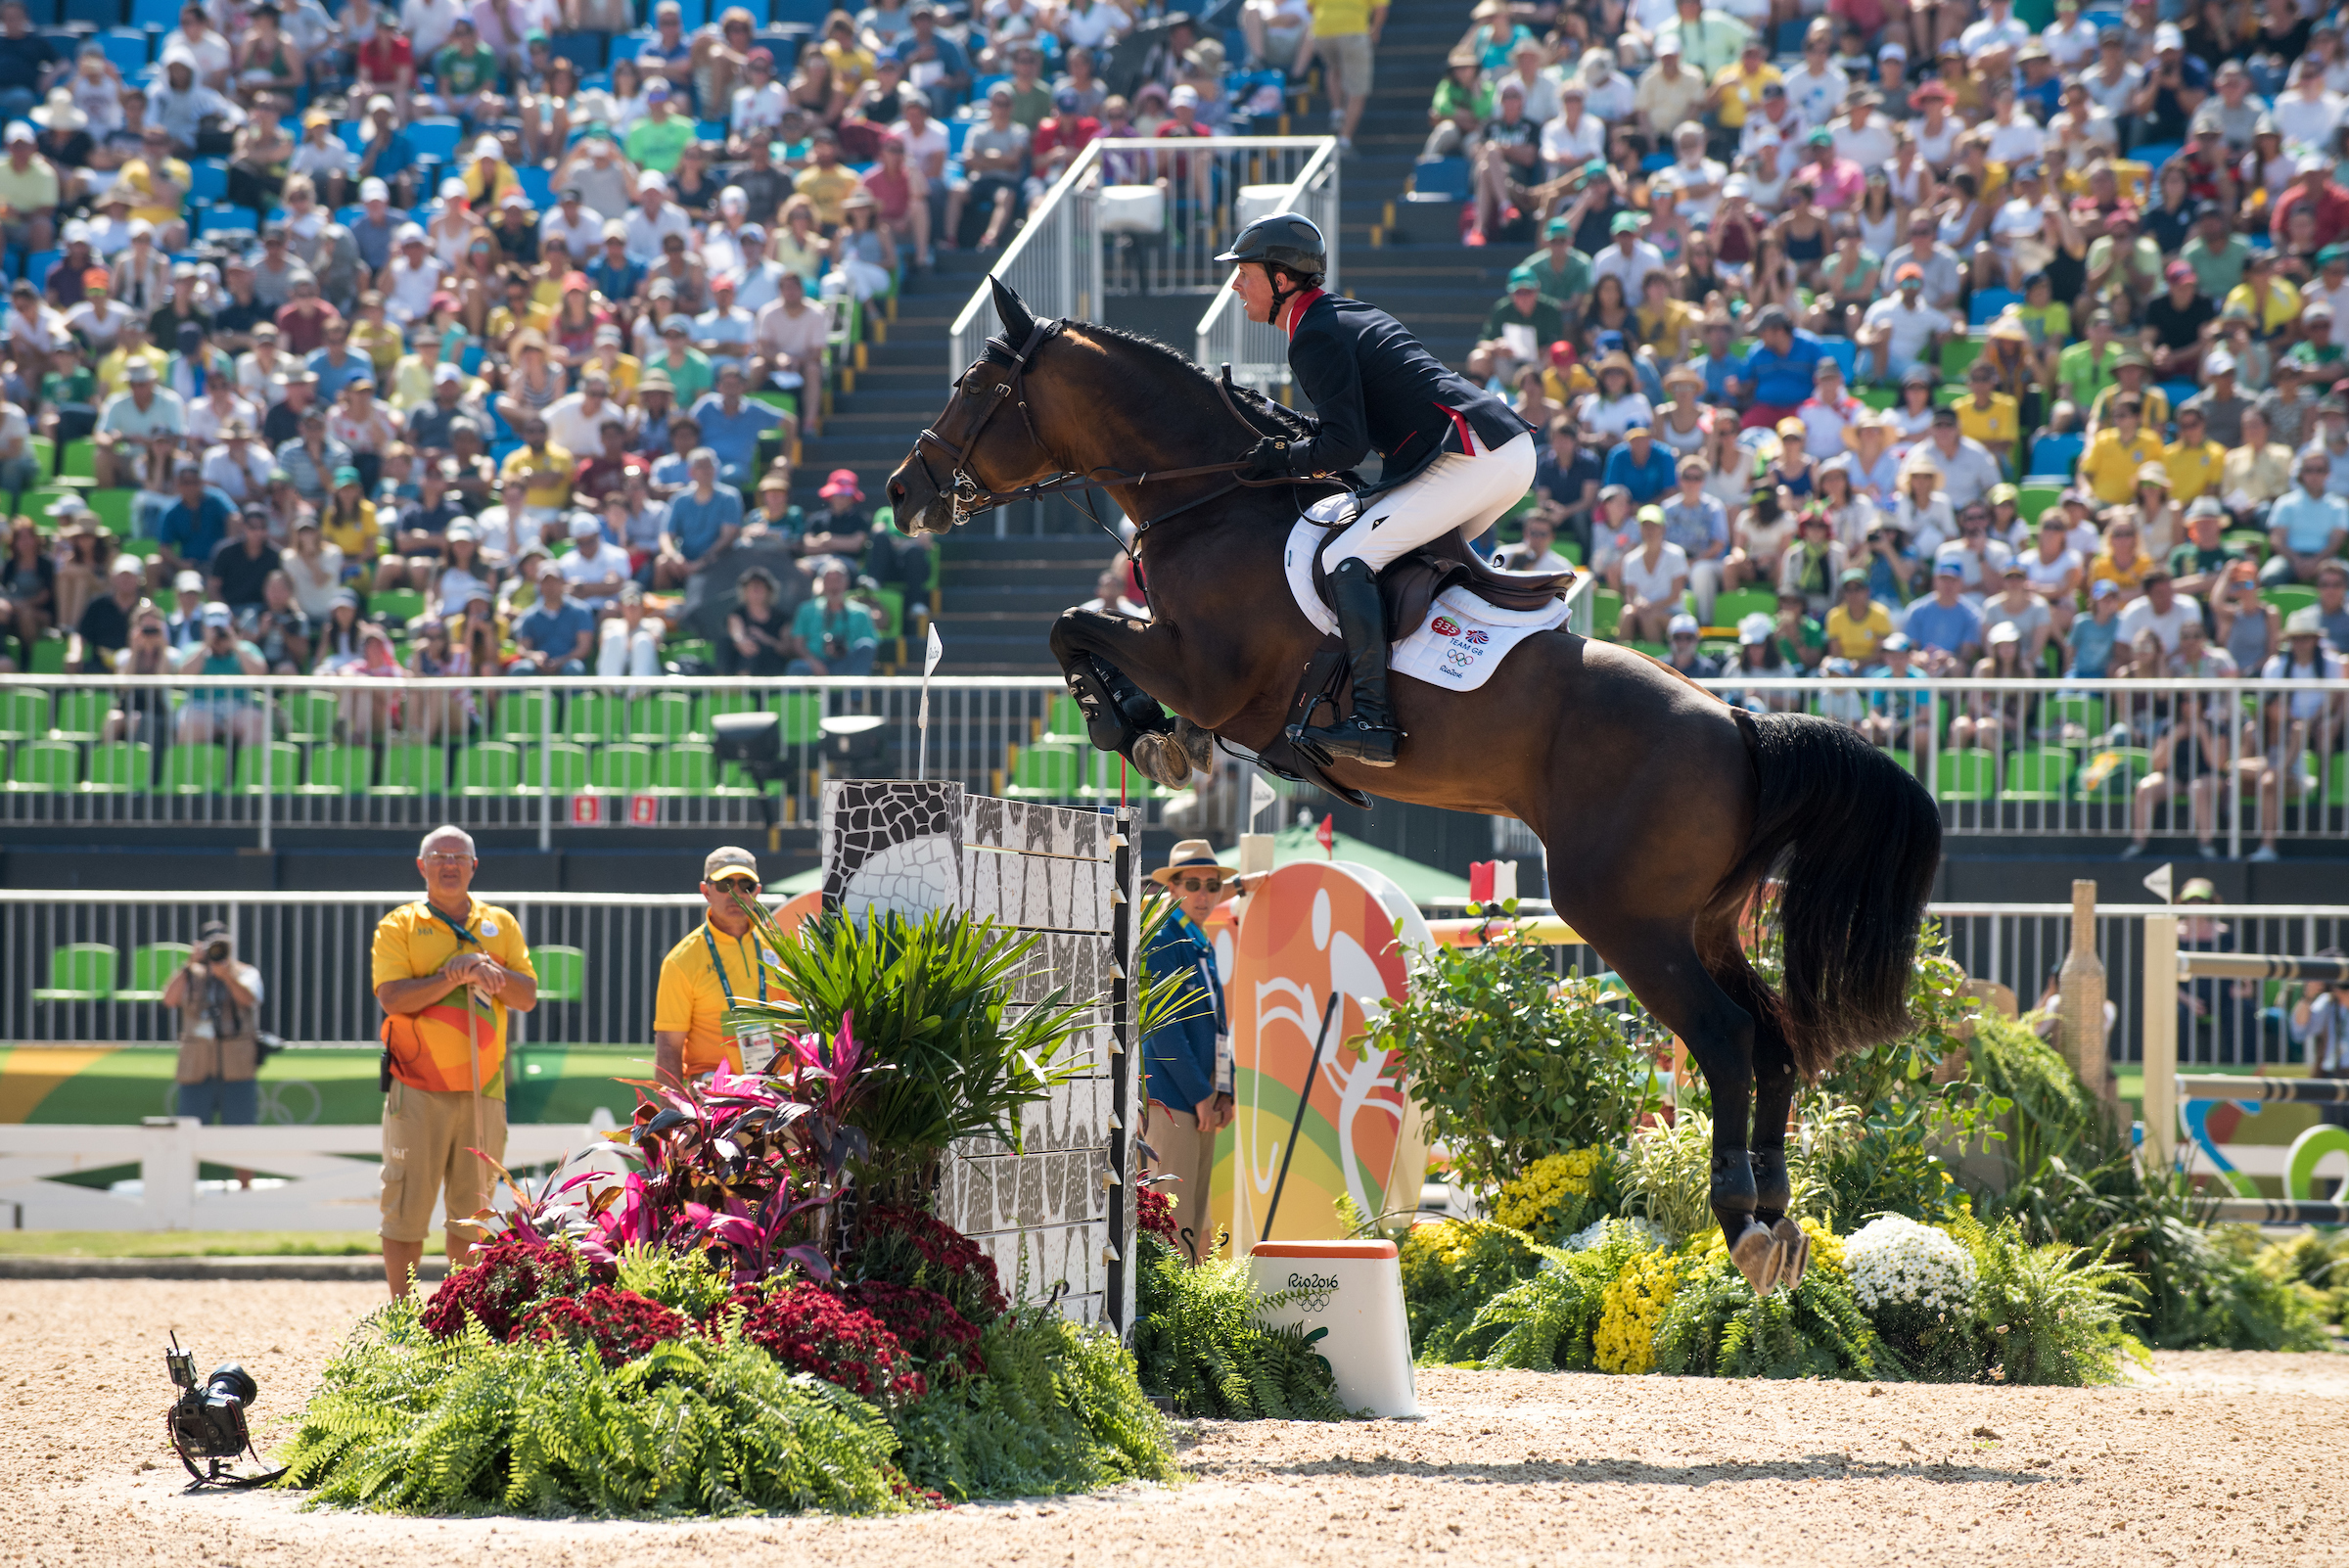 Ben Maher and Tic Tac produced some great jumping at Deodoro (BEF/Jon Stroud Media)